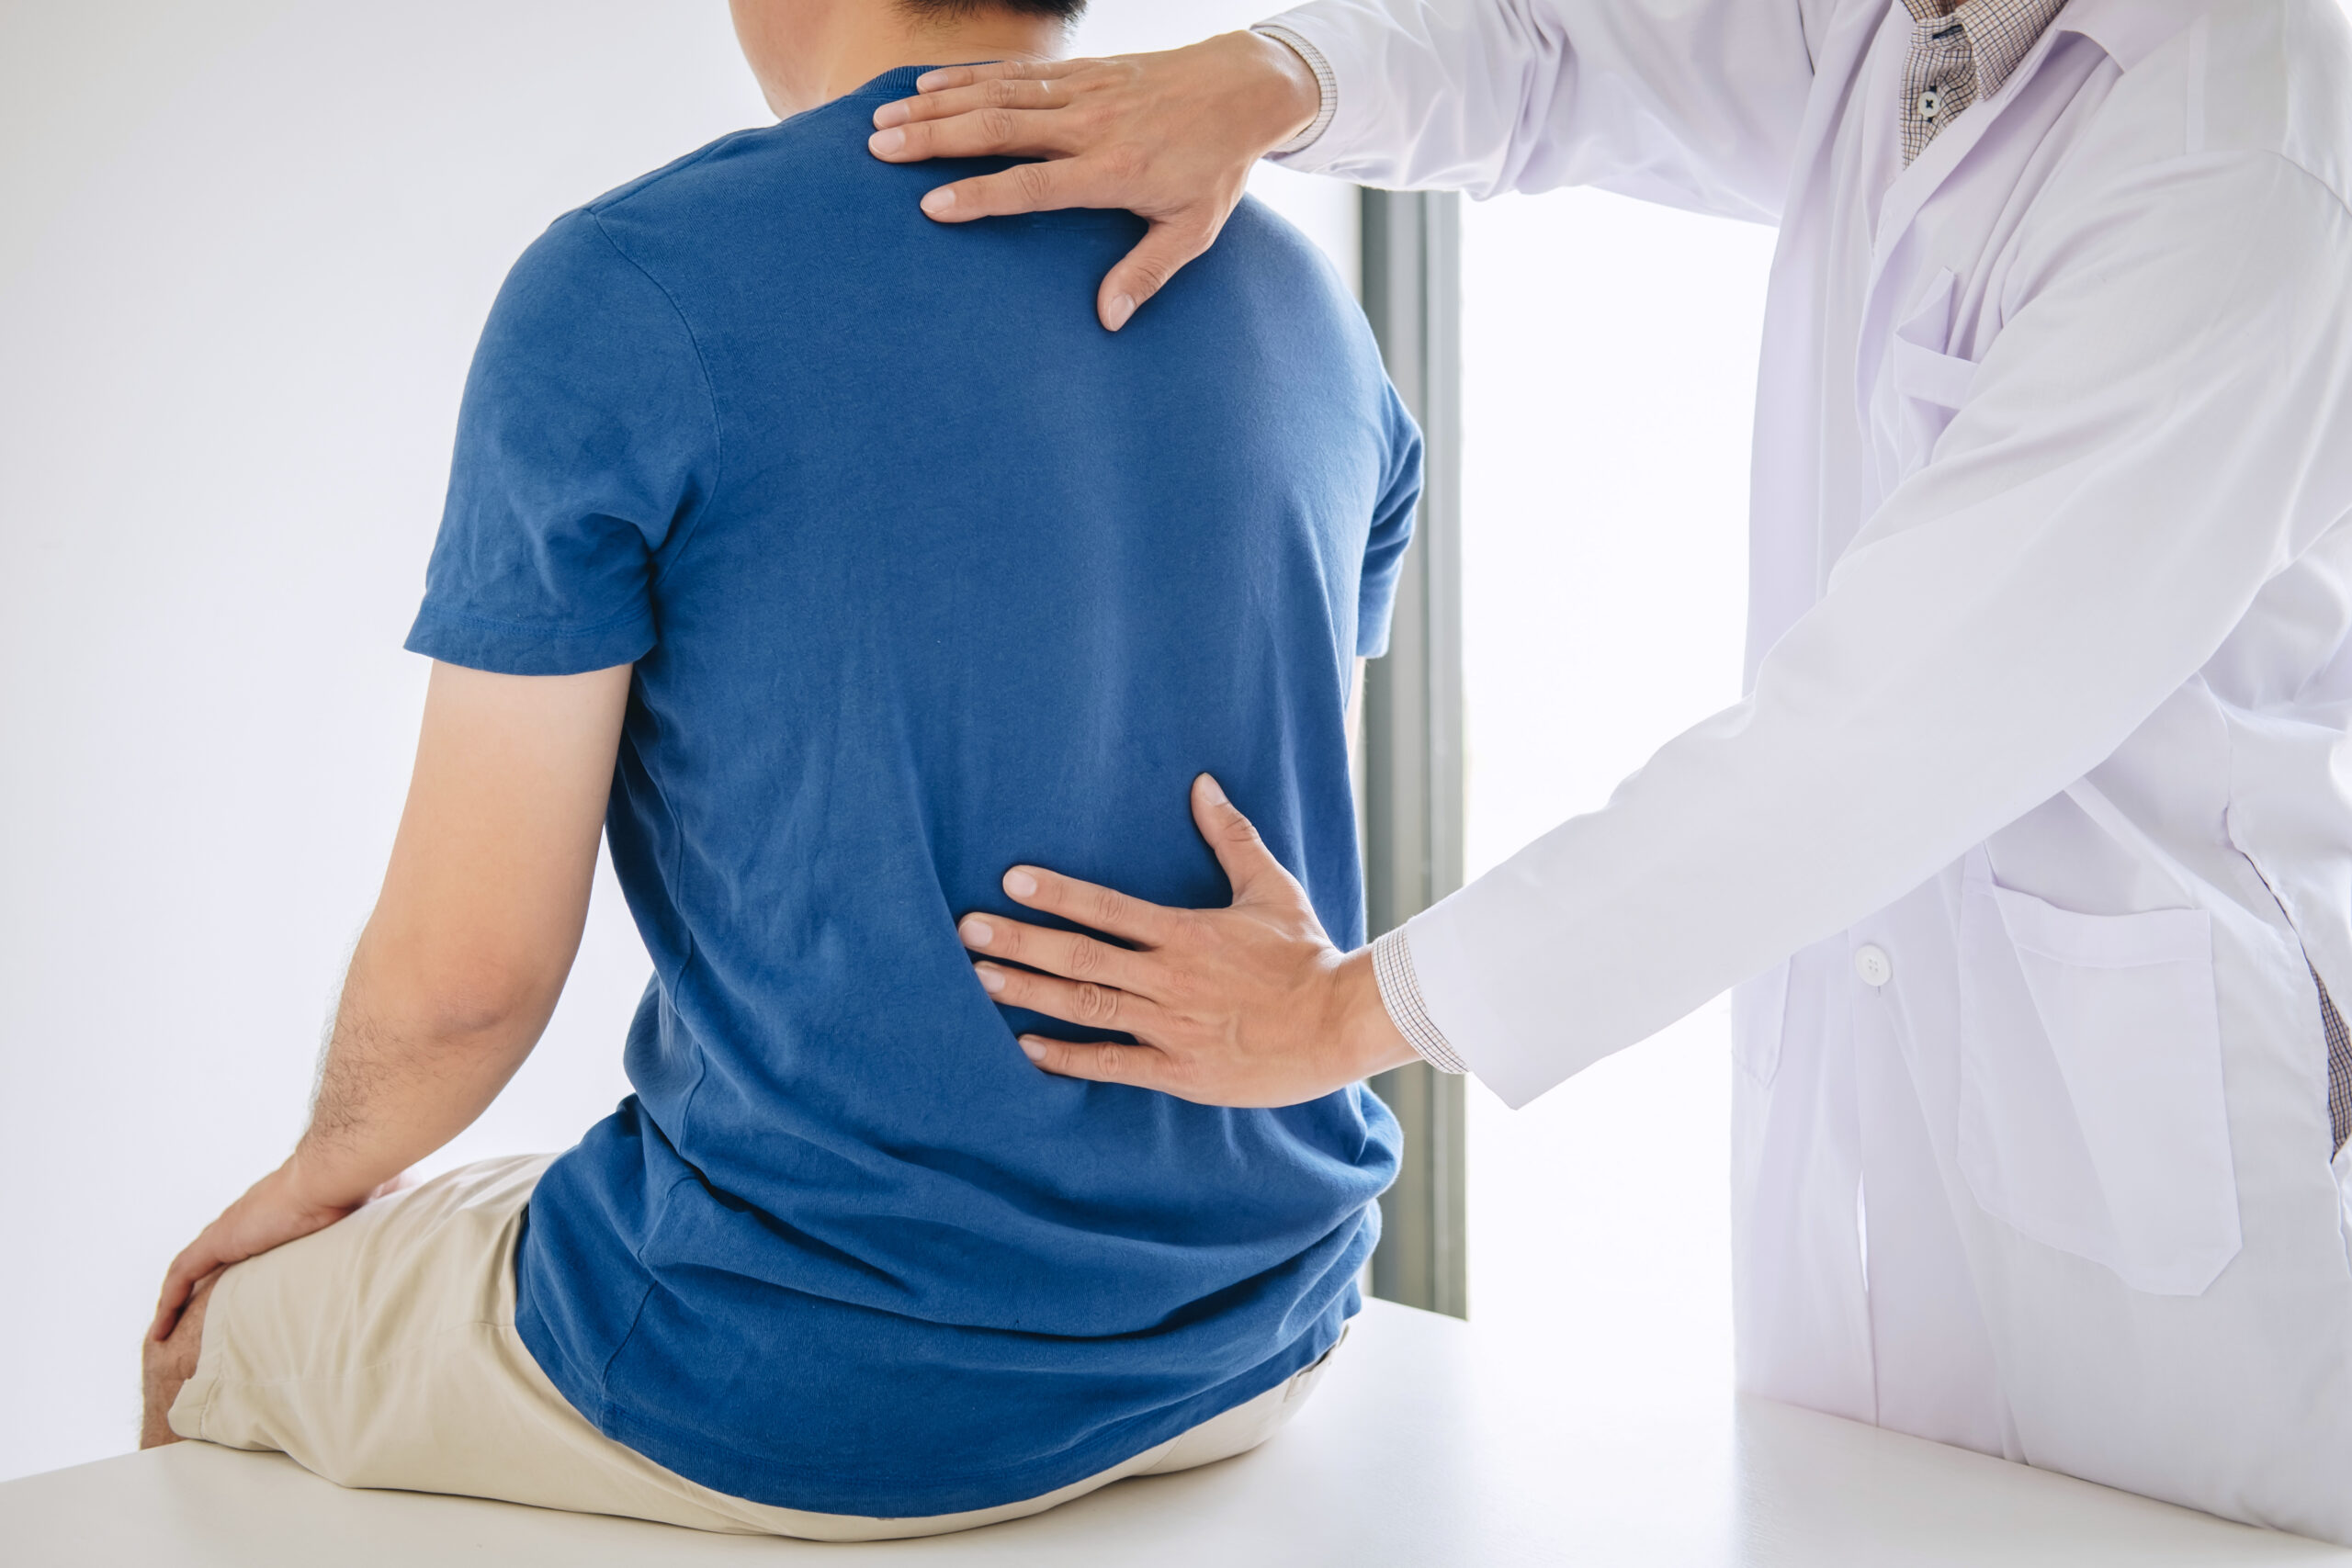 doctor treating back pain